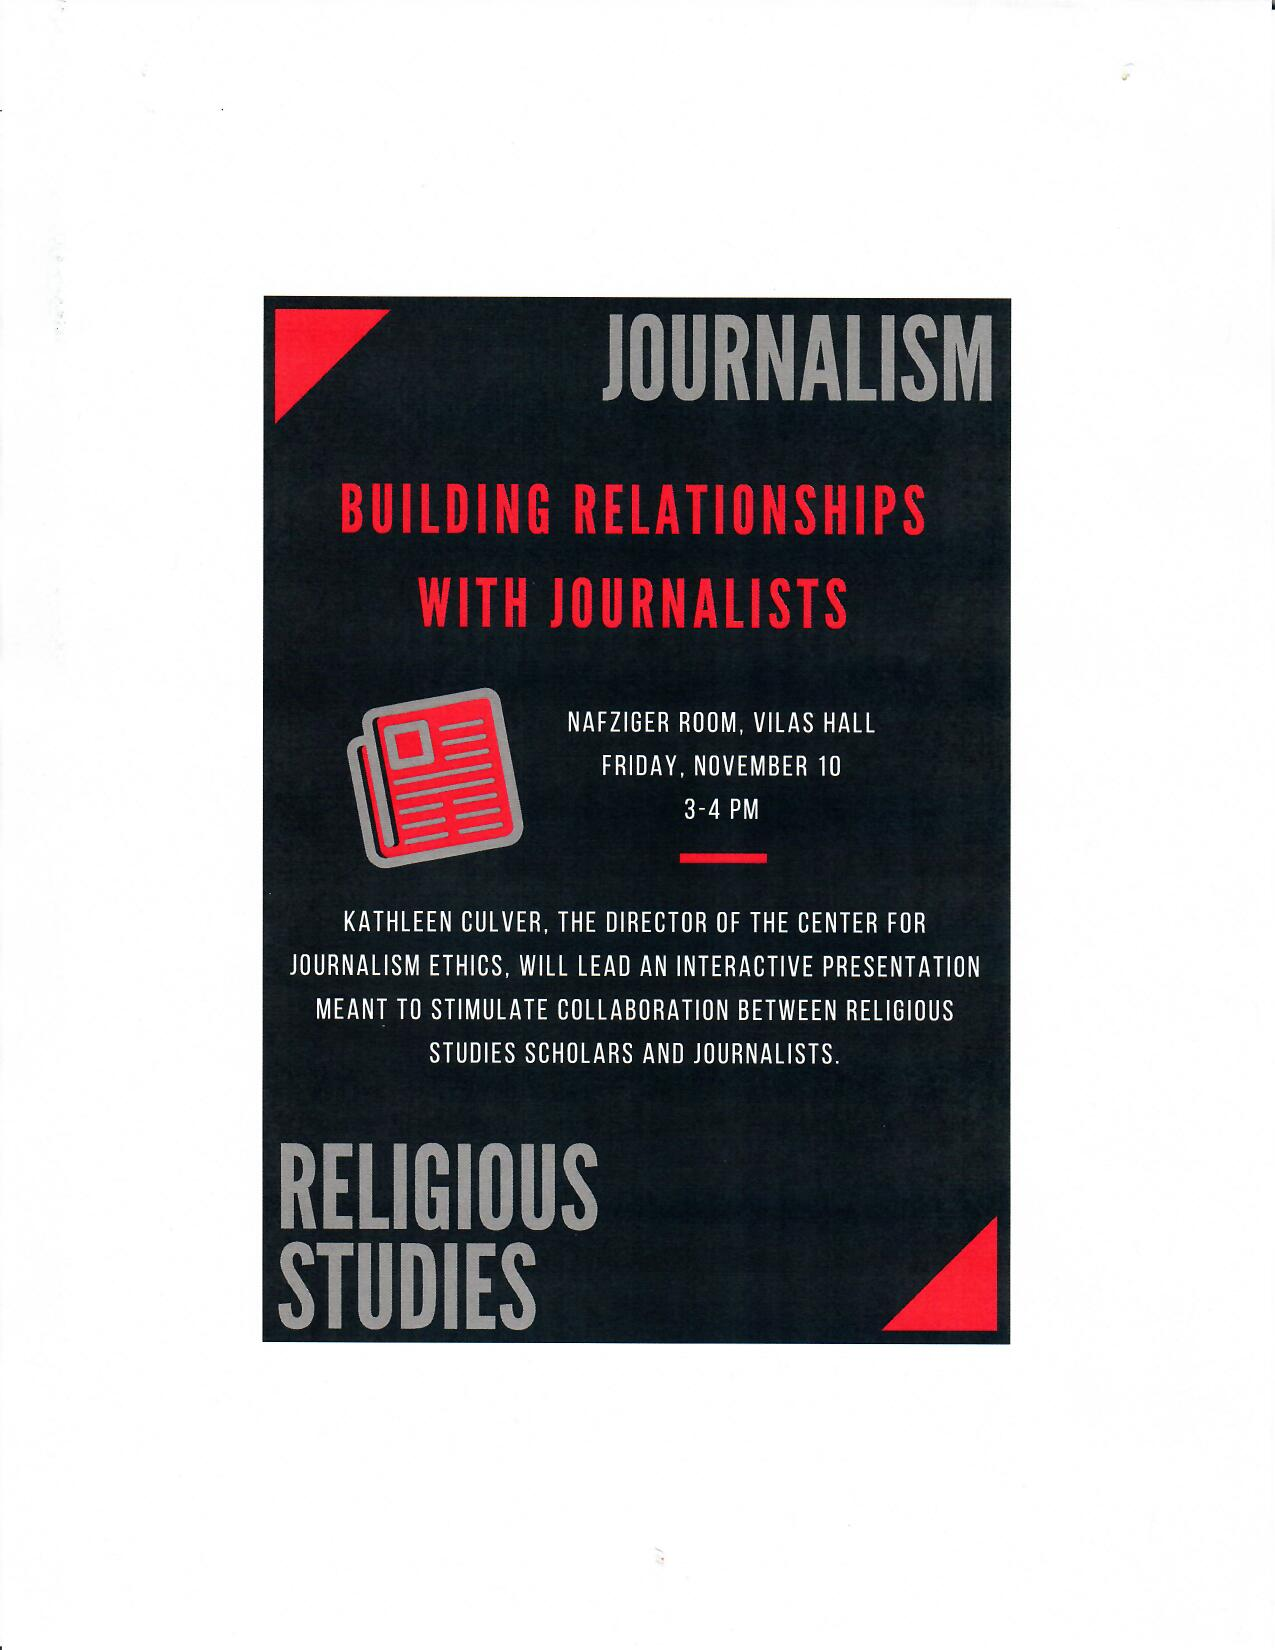 Building relationships with journalists flyer